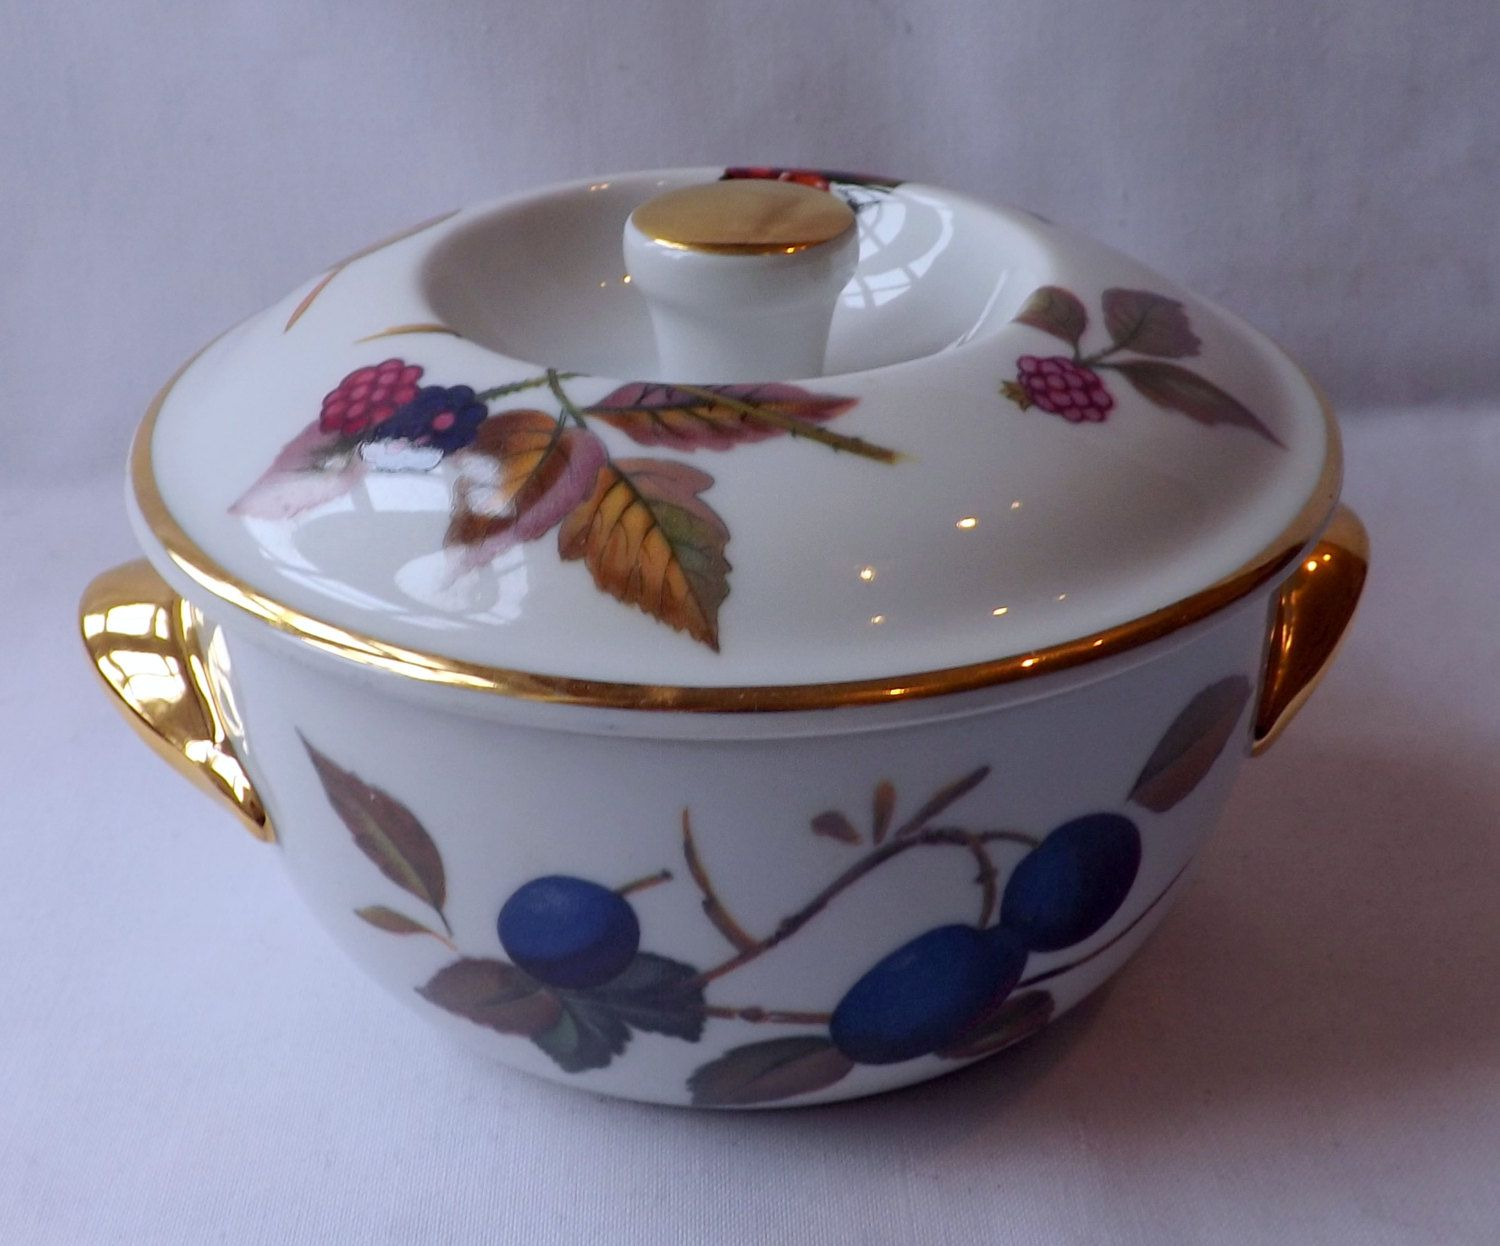 Royal Worcester one person round casserole dish with lid  Evesham Gold 1961. & Royal Worcester one person round casserole dish with lid  Evesham ...